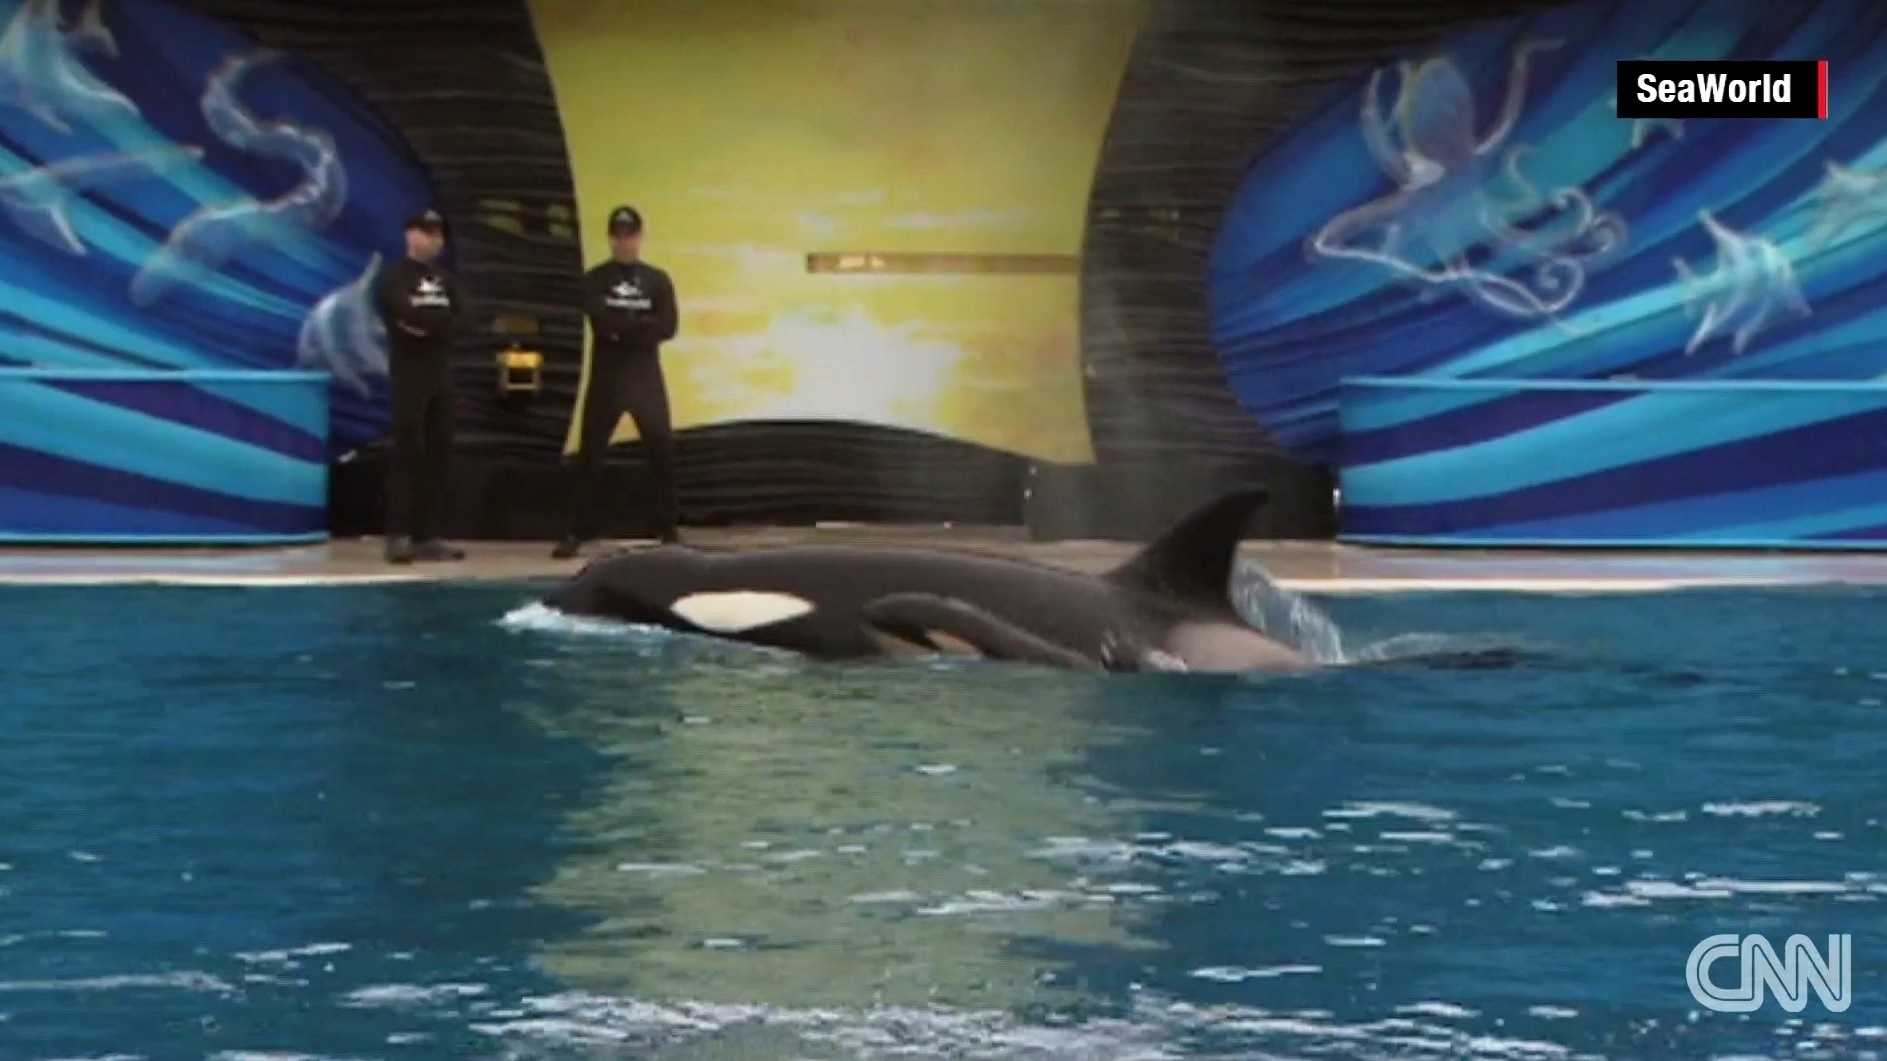 Sea World Orca CNN